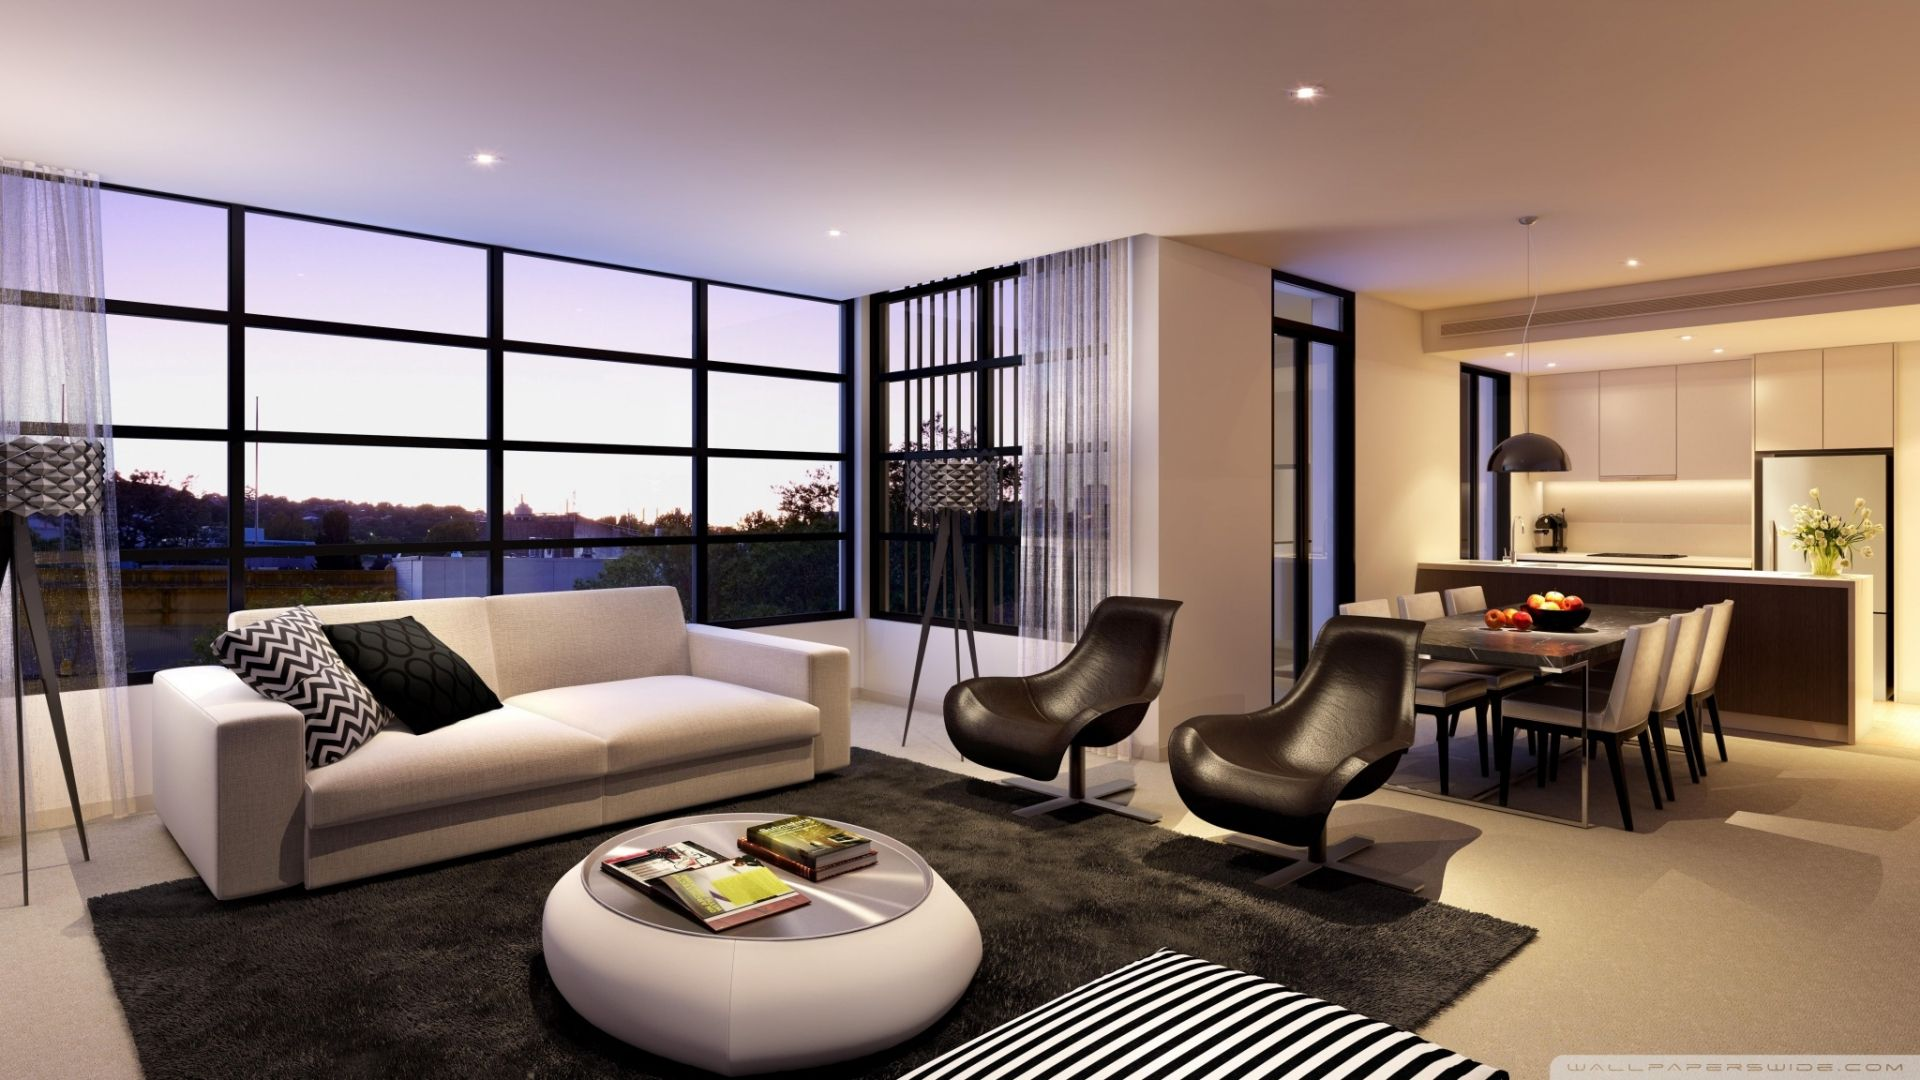 Living Room Design is a fantastic HD wallpaper for your PC